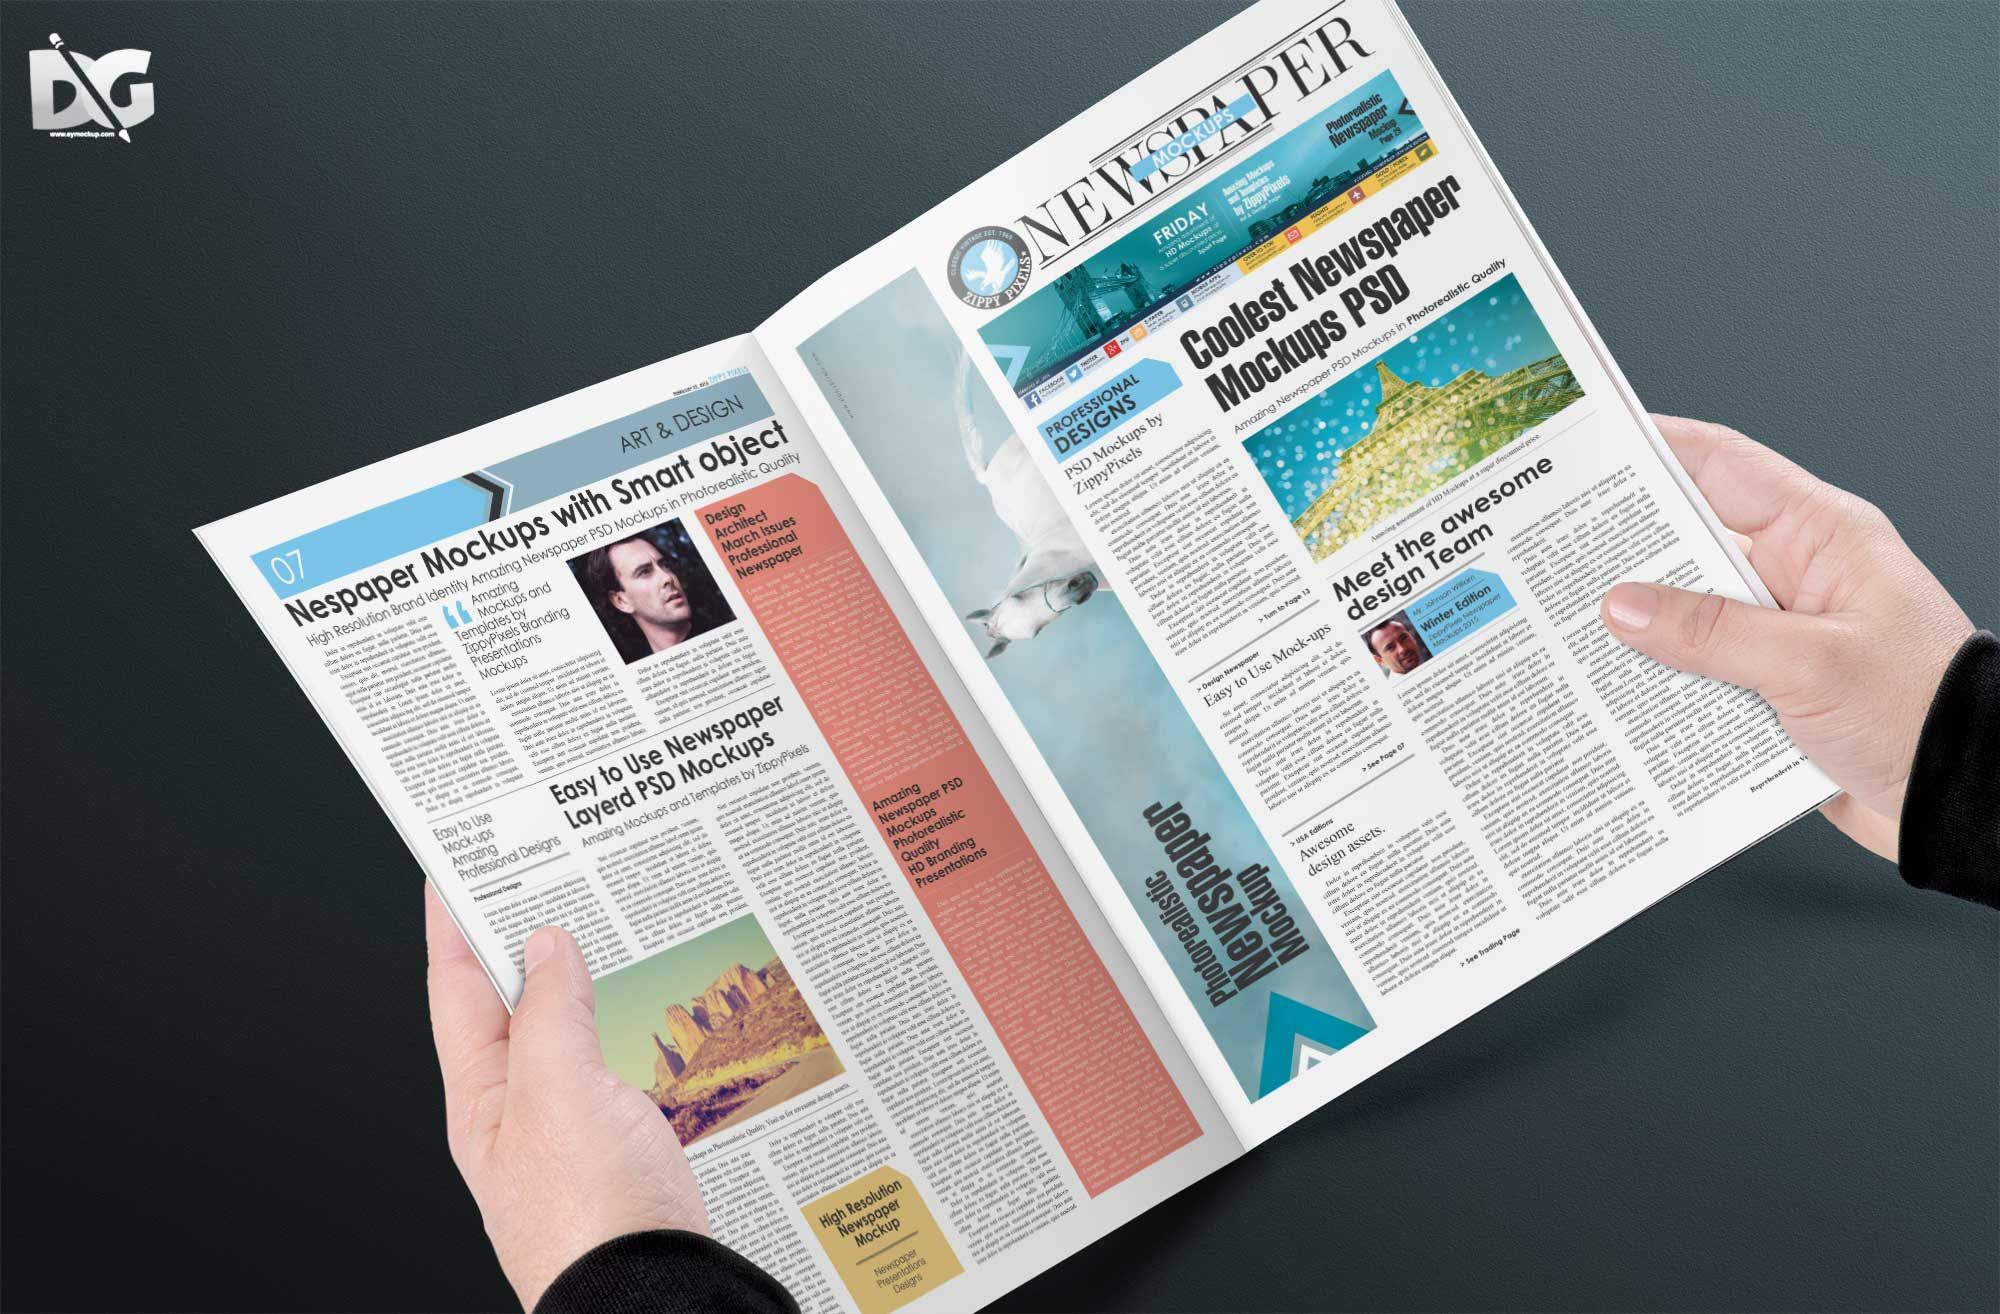 Free Download Psd News Magazine Pages Mockup Free Logo Mockup Mockup Mockup Free Download